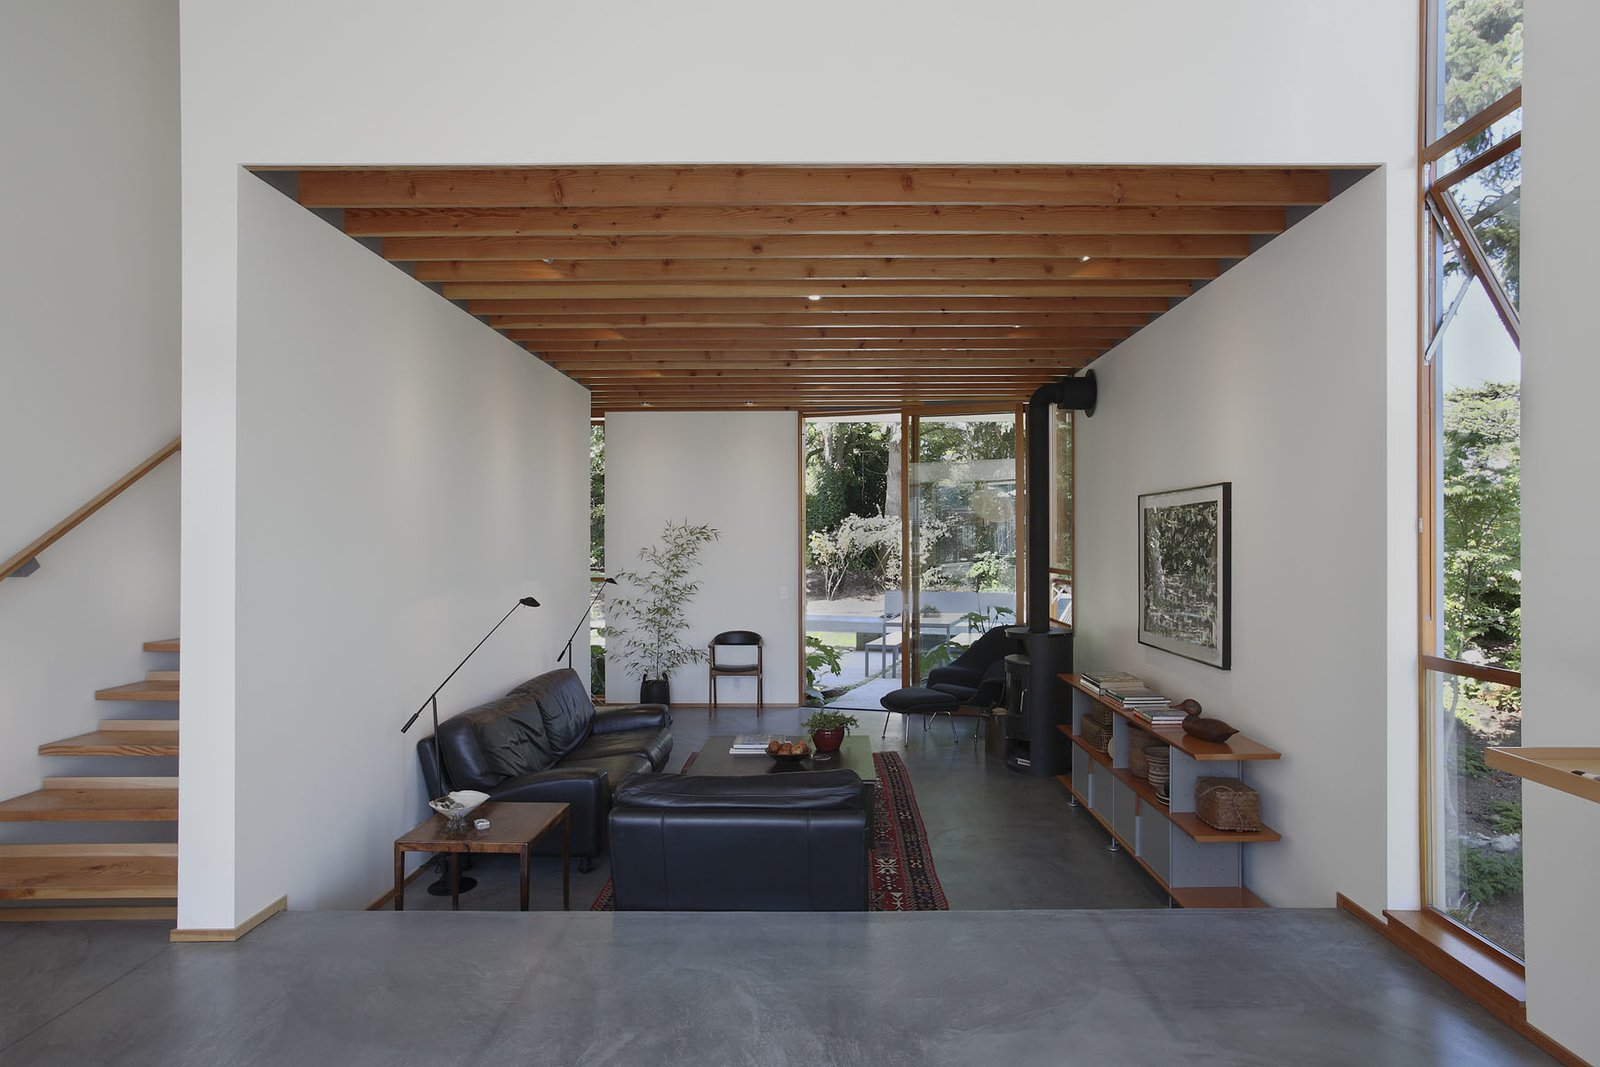 Exposed fir ceiling beams help muffle acoustics in the living room. With black leather seating, a Knoll Womb Chair and a Rais Rondo stove, the room is comfortable but sophisticated.